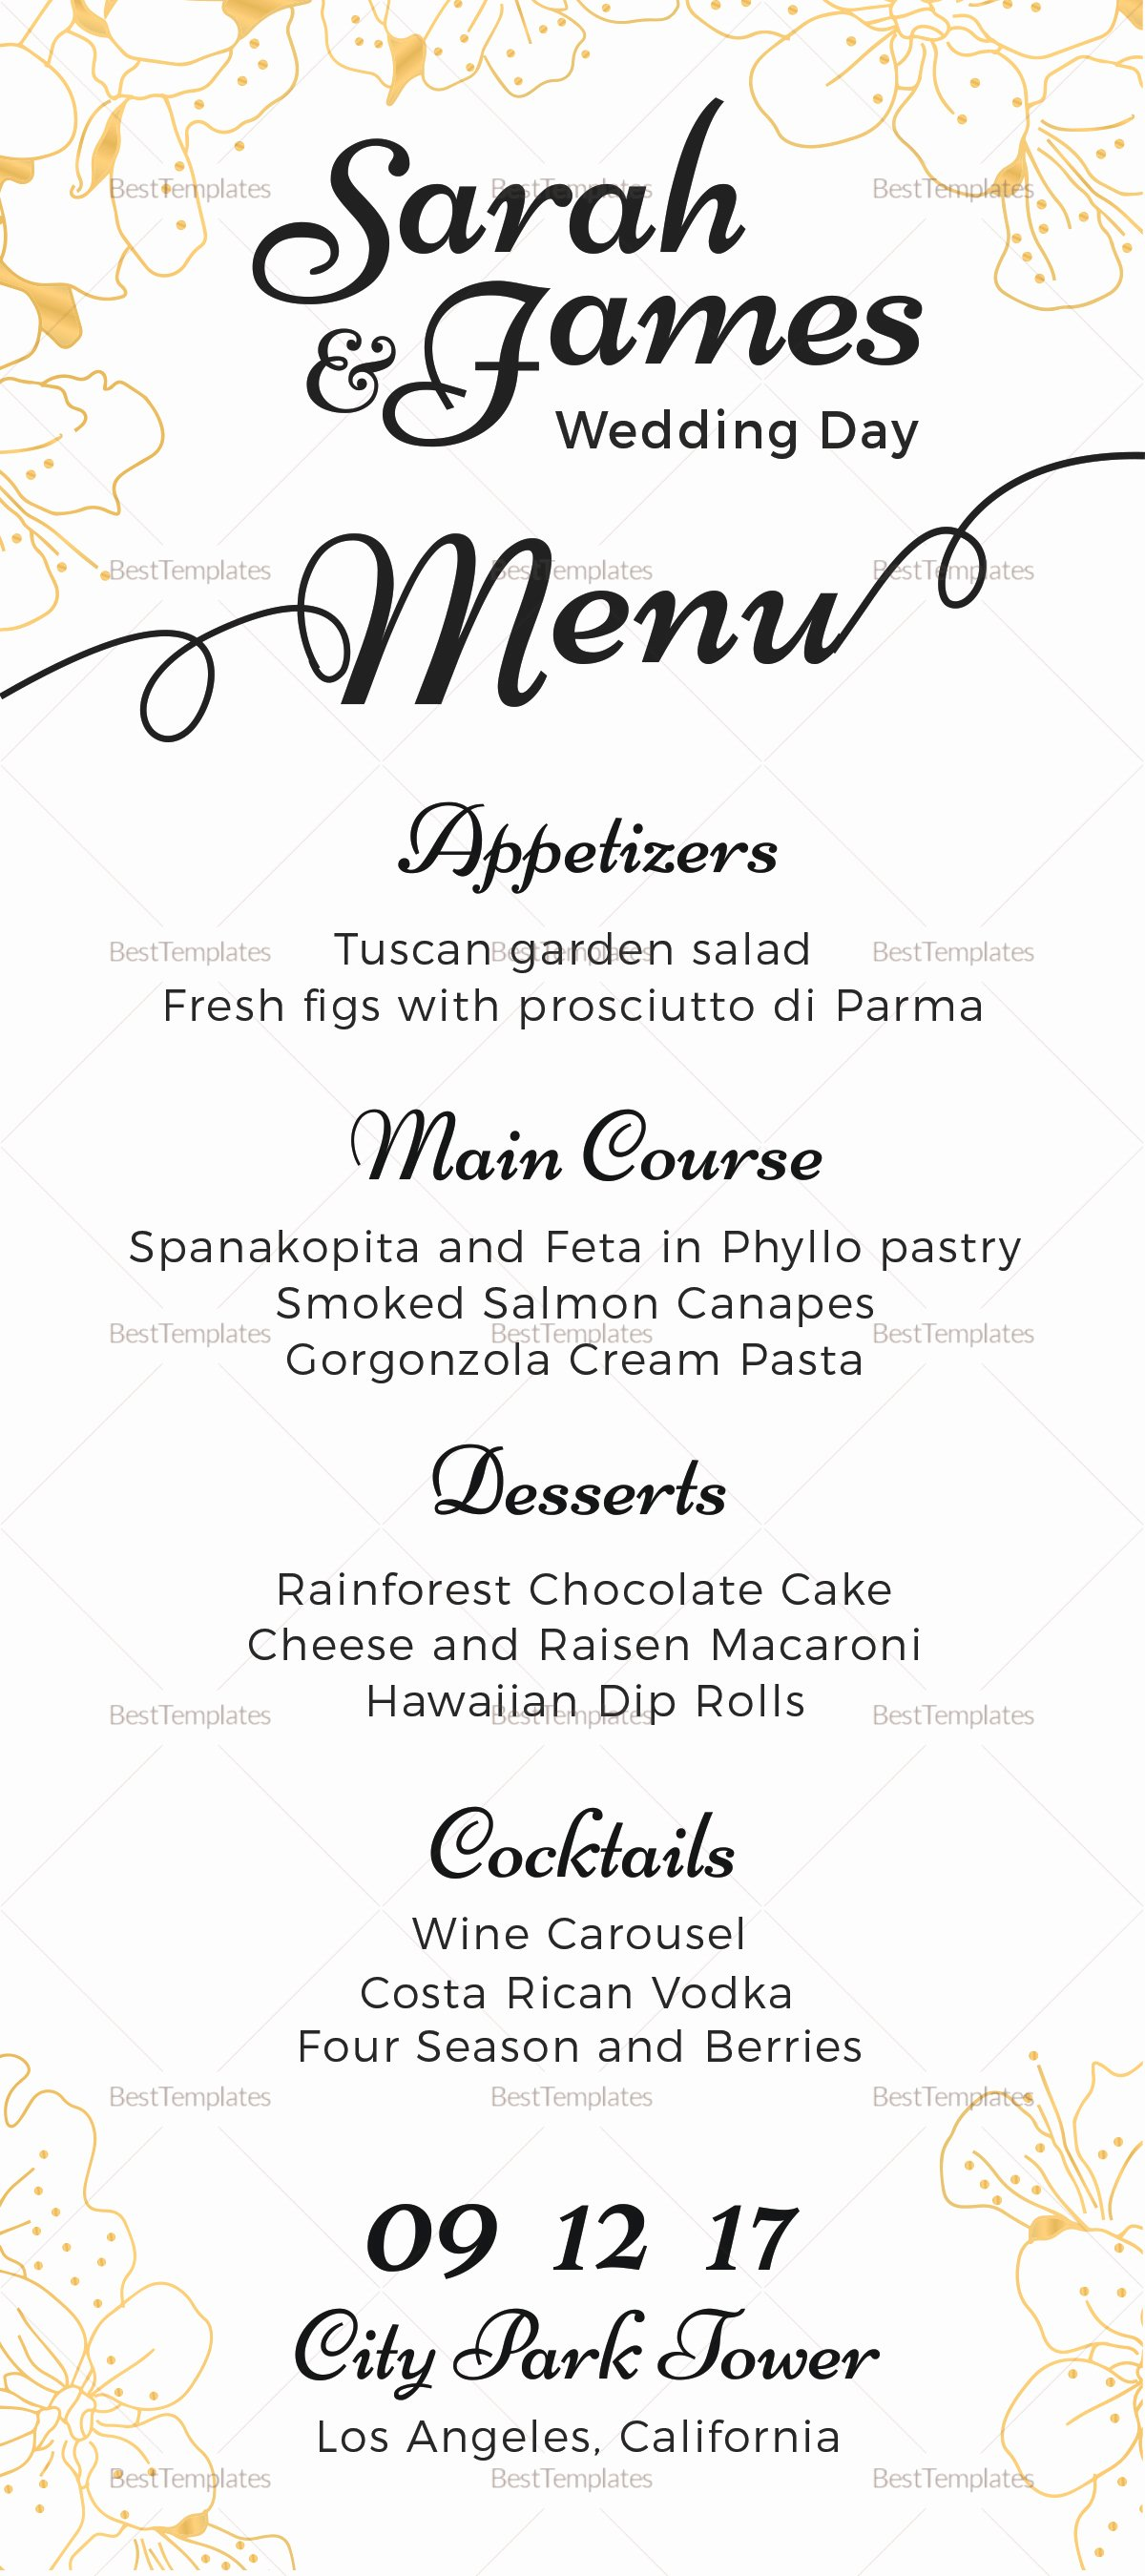 Wedding Menu Template Word Inspirational Reception Wedding Menu Design Template In Psd Word